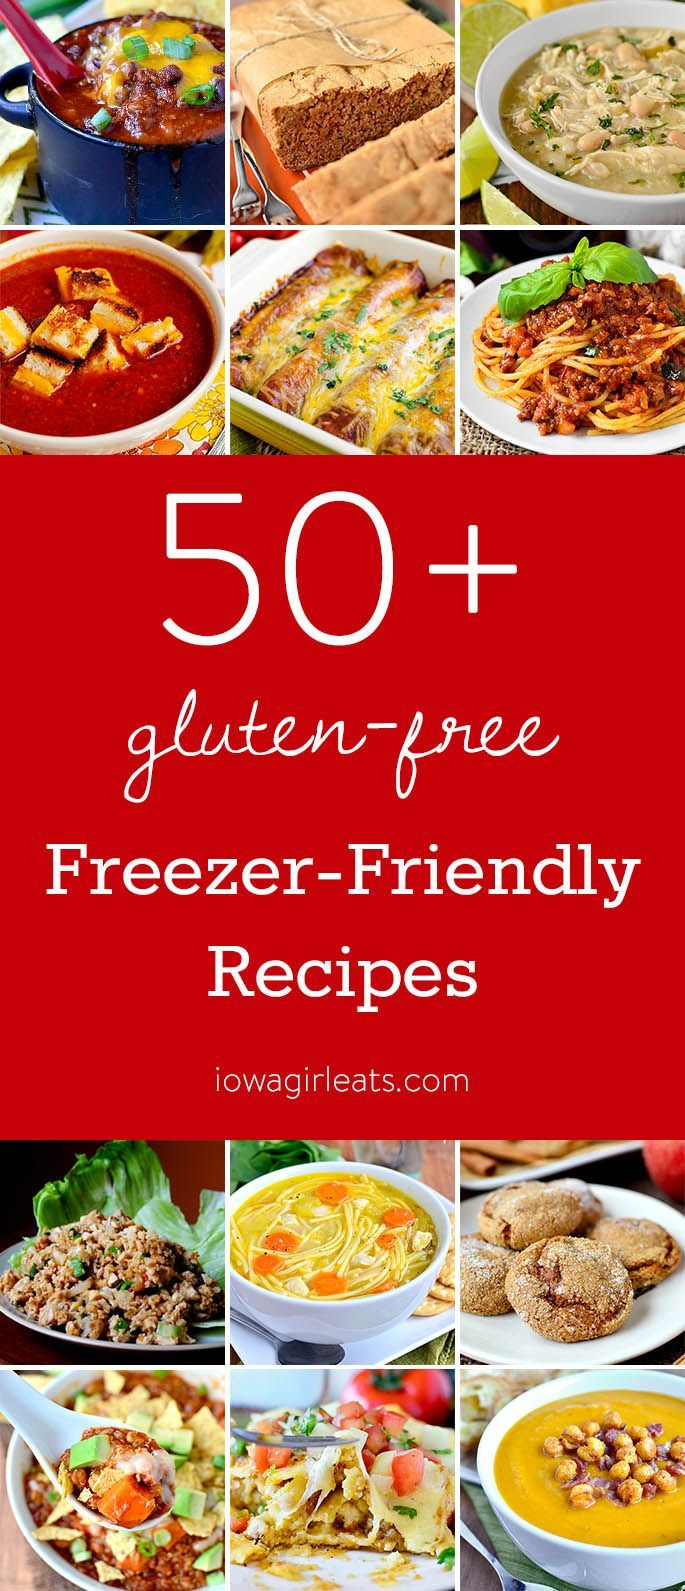 Freezer cooking is a wonderful way to save time and money in the kitchen! Here are 50+ gluten-free freezer-friendly recipes, plus tips on how to freeze foods, and which foods do and don't freeze well.  | iowagirleats.com